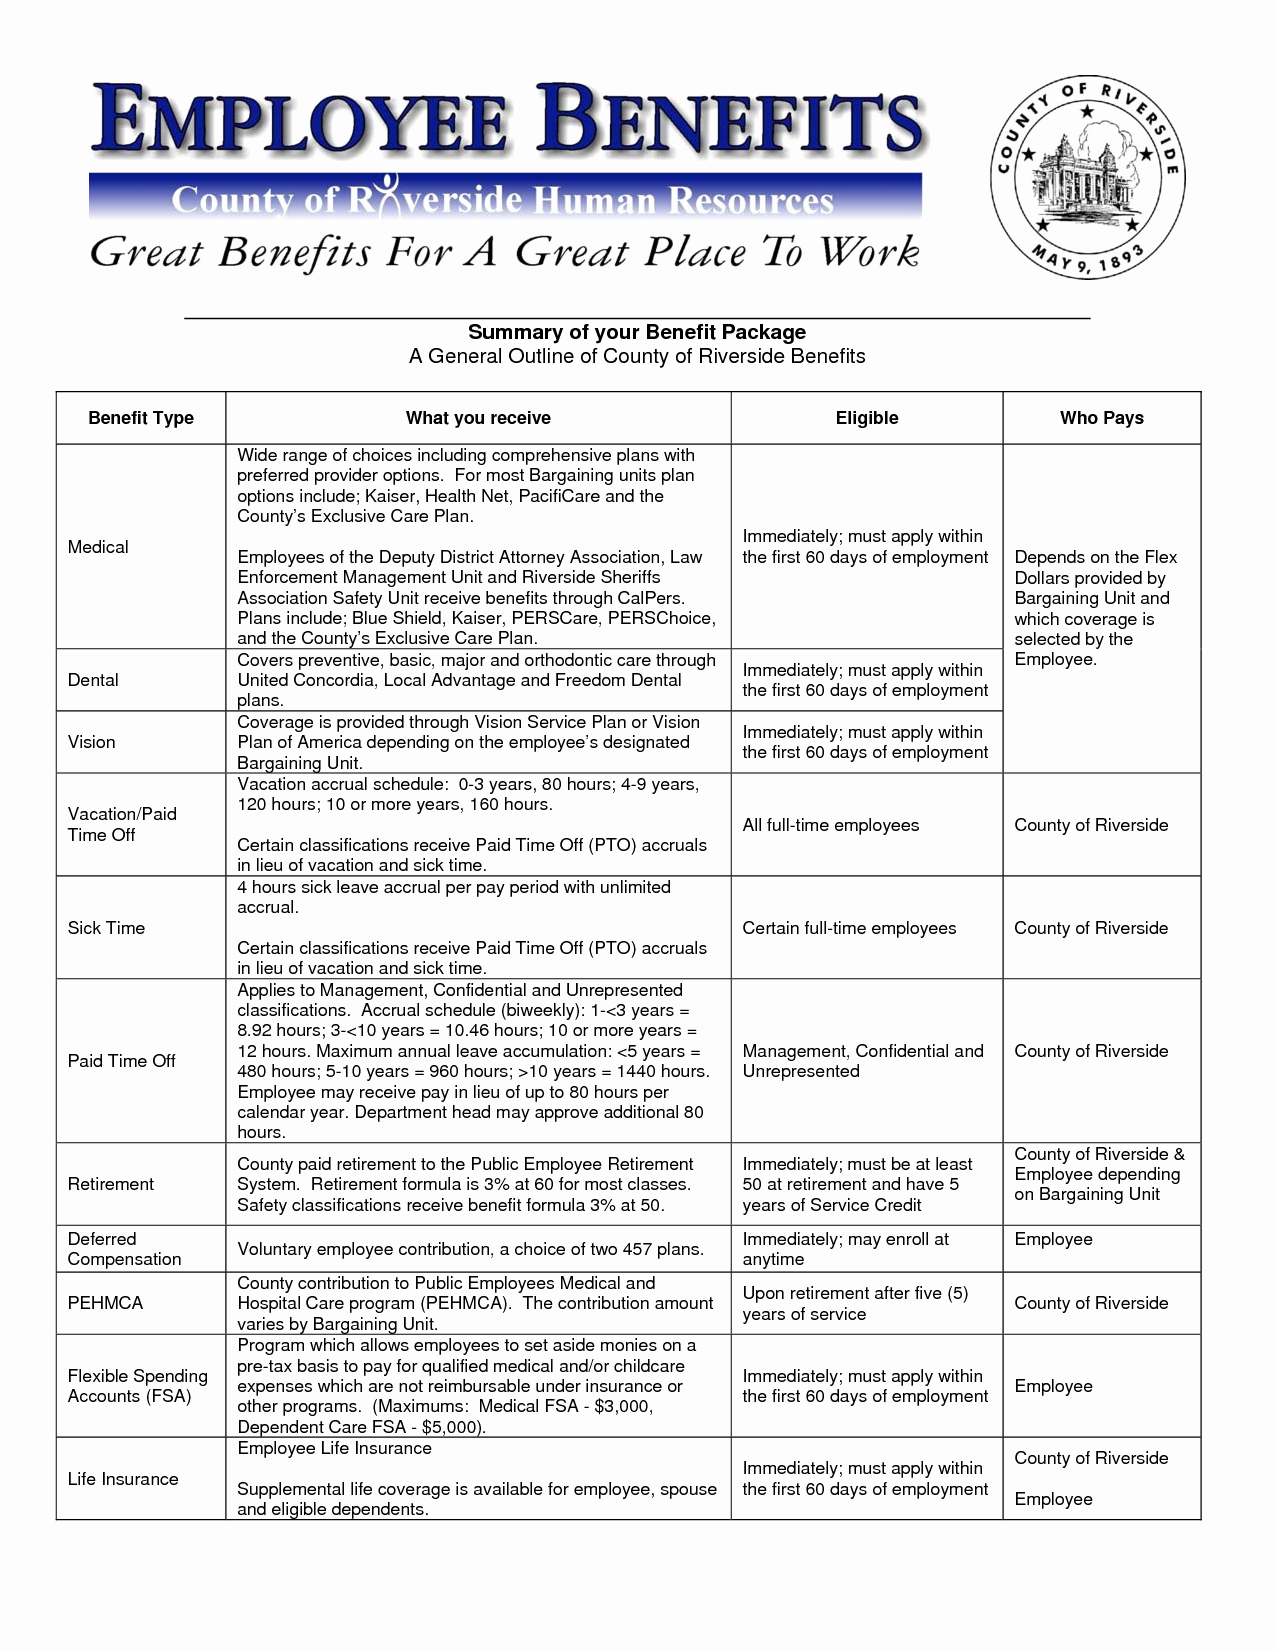 Employee Benefits Package Template New Employee Benefits Package Template